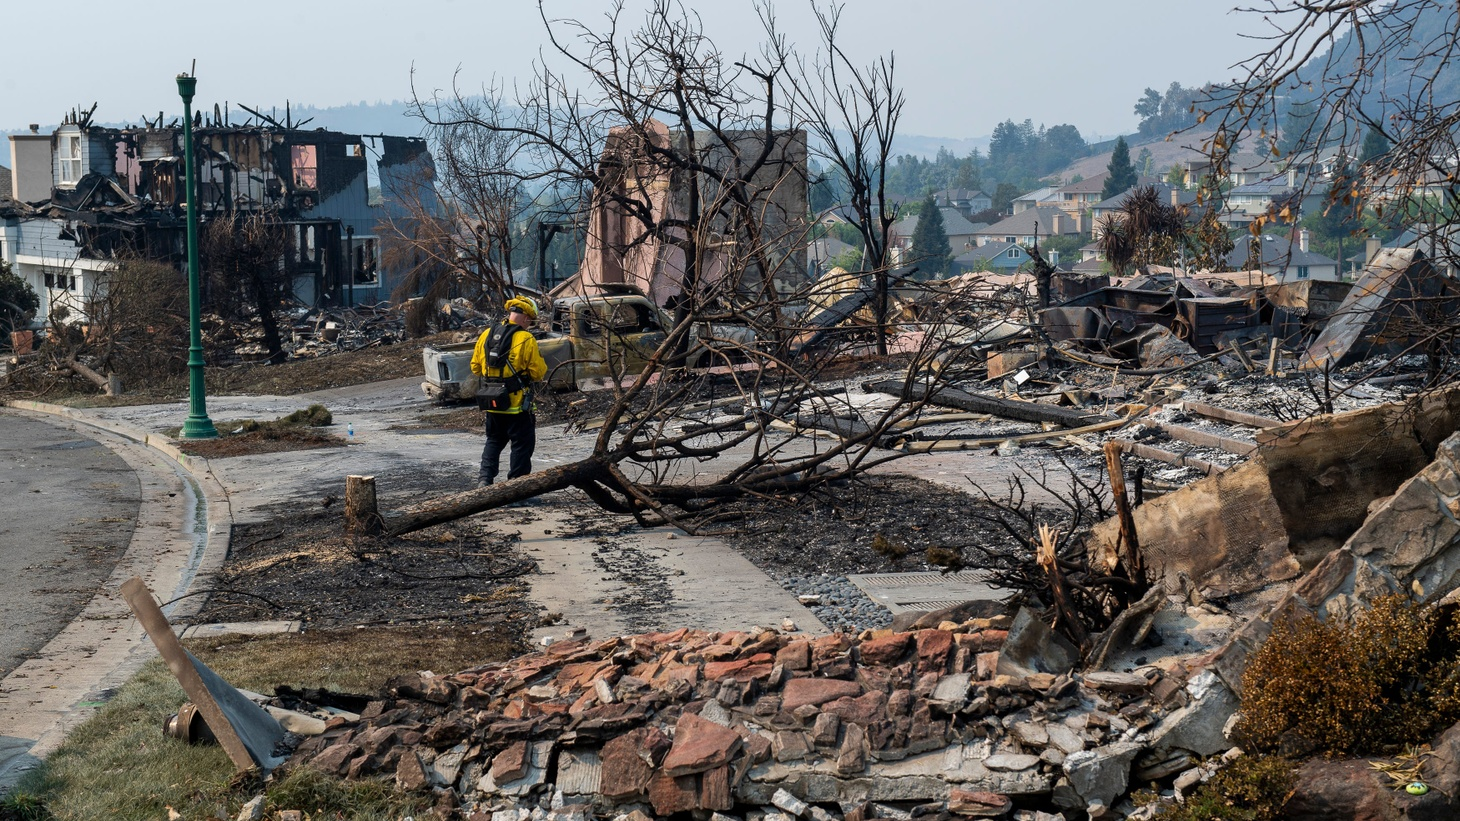 The Glass Fire has destroyed numerous structures in Napa and Sonoma county since it ignited early Sunday morning. Remnants of homes rest on the hill of the Skyhawk neighborhood in Santa Rosa, Calif., on Tuesday, Sept. 29, 2020.